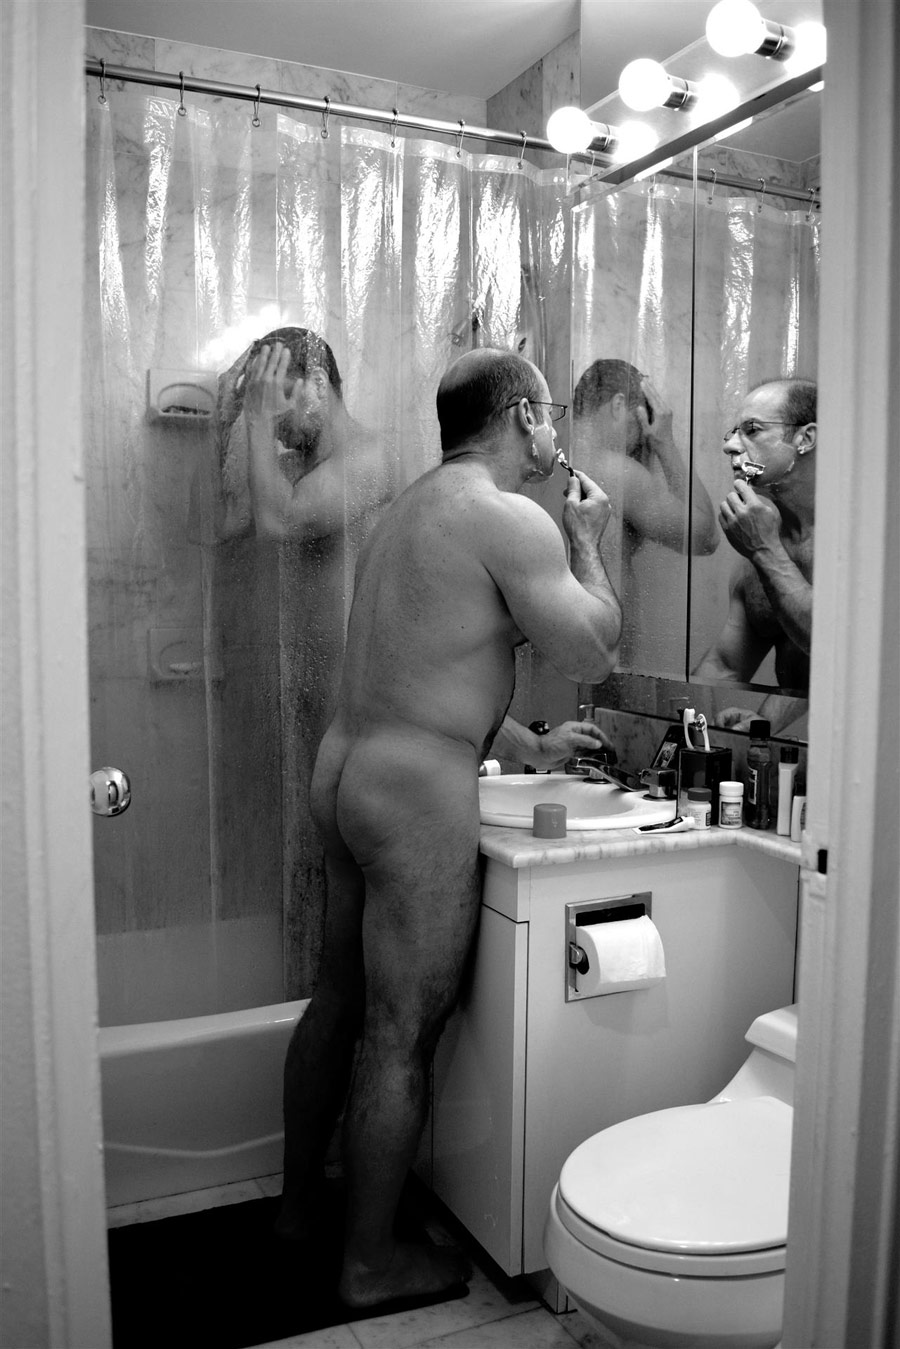 Getting Ready, © Richard Vechi, South Hackensack, New Jersey, Santa Fe Photographic